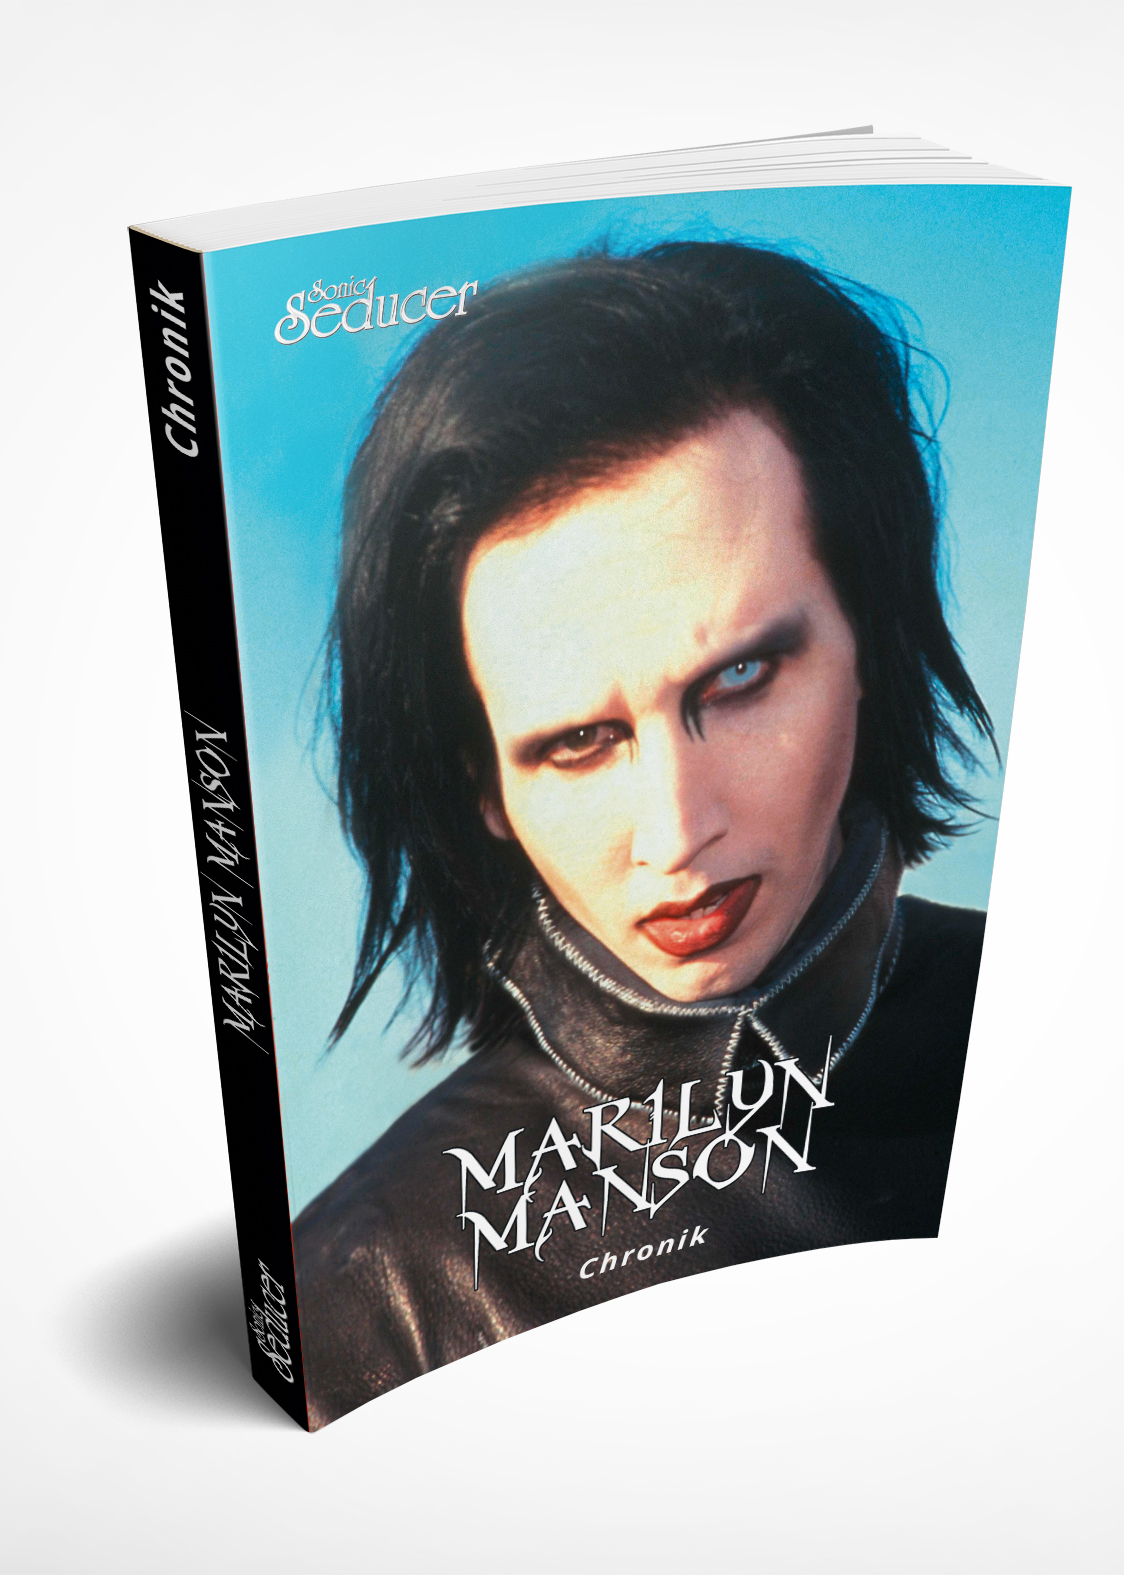 https://sonic-seducer.de/images/stories/virtuemart/product/marilyn-manson-taschenbuch-mockup-covervault.jpg